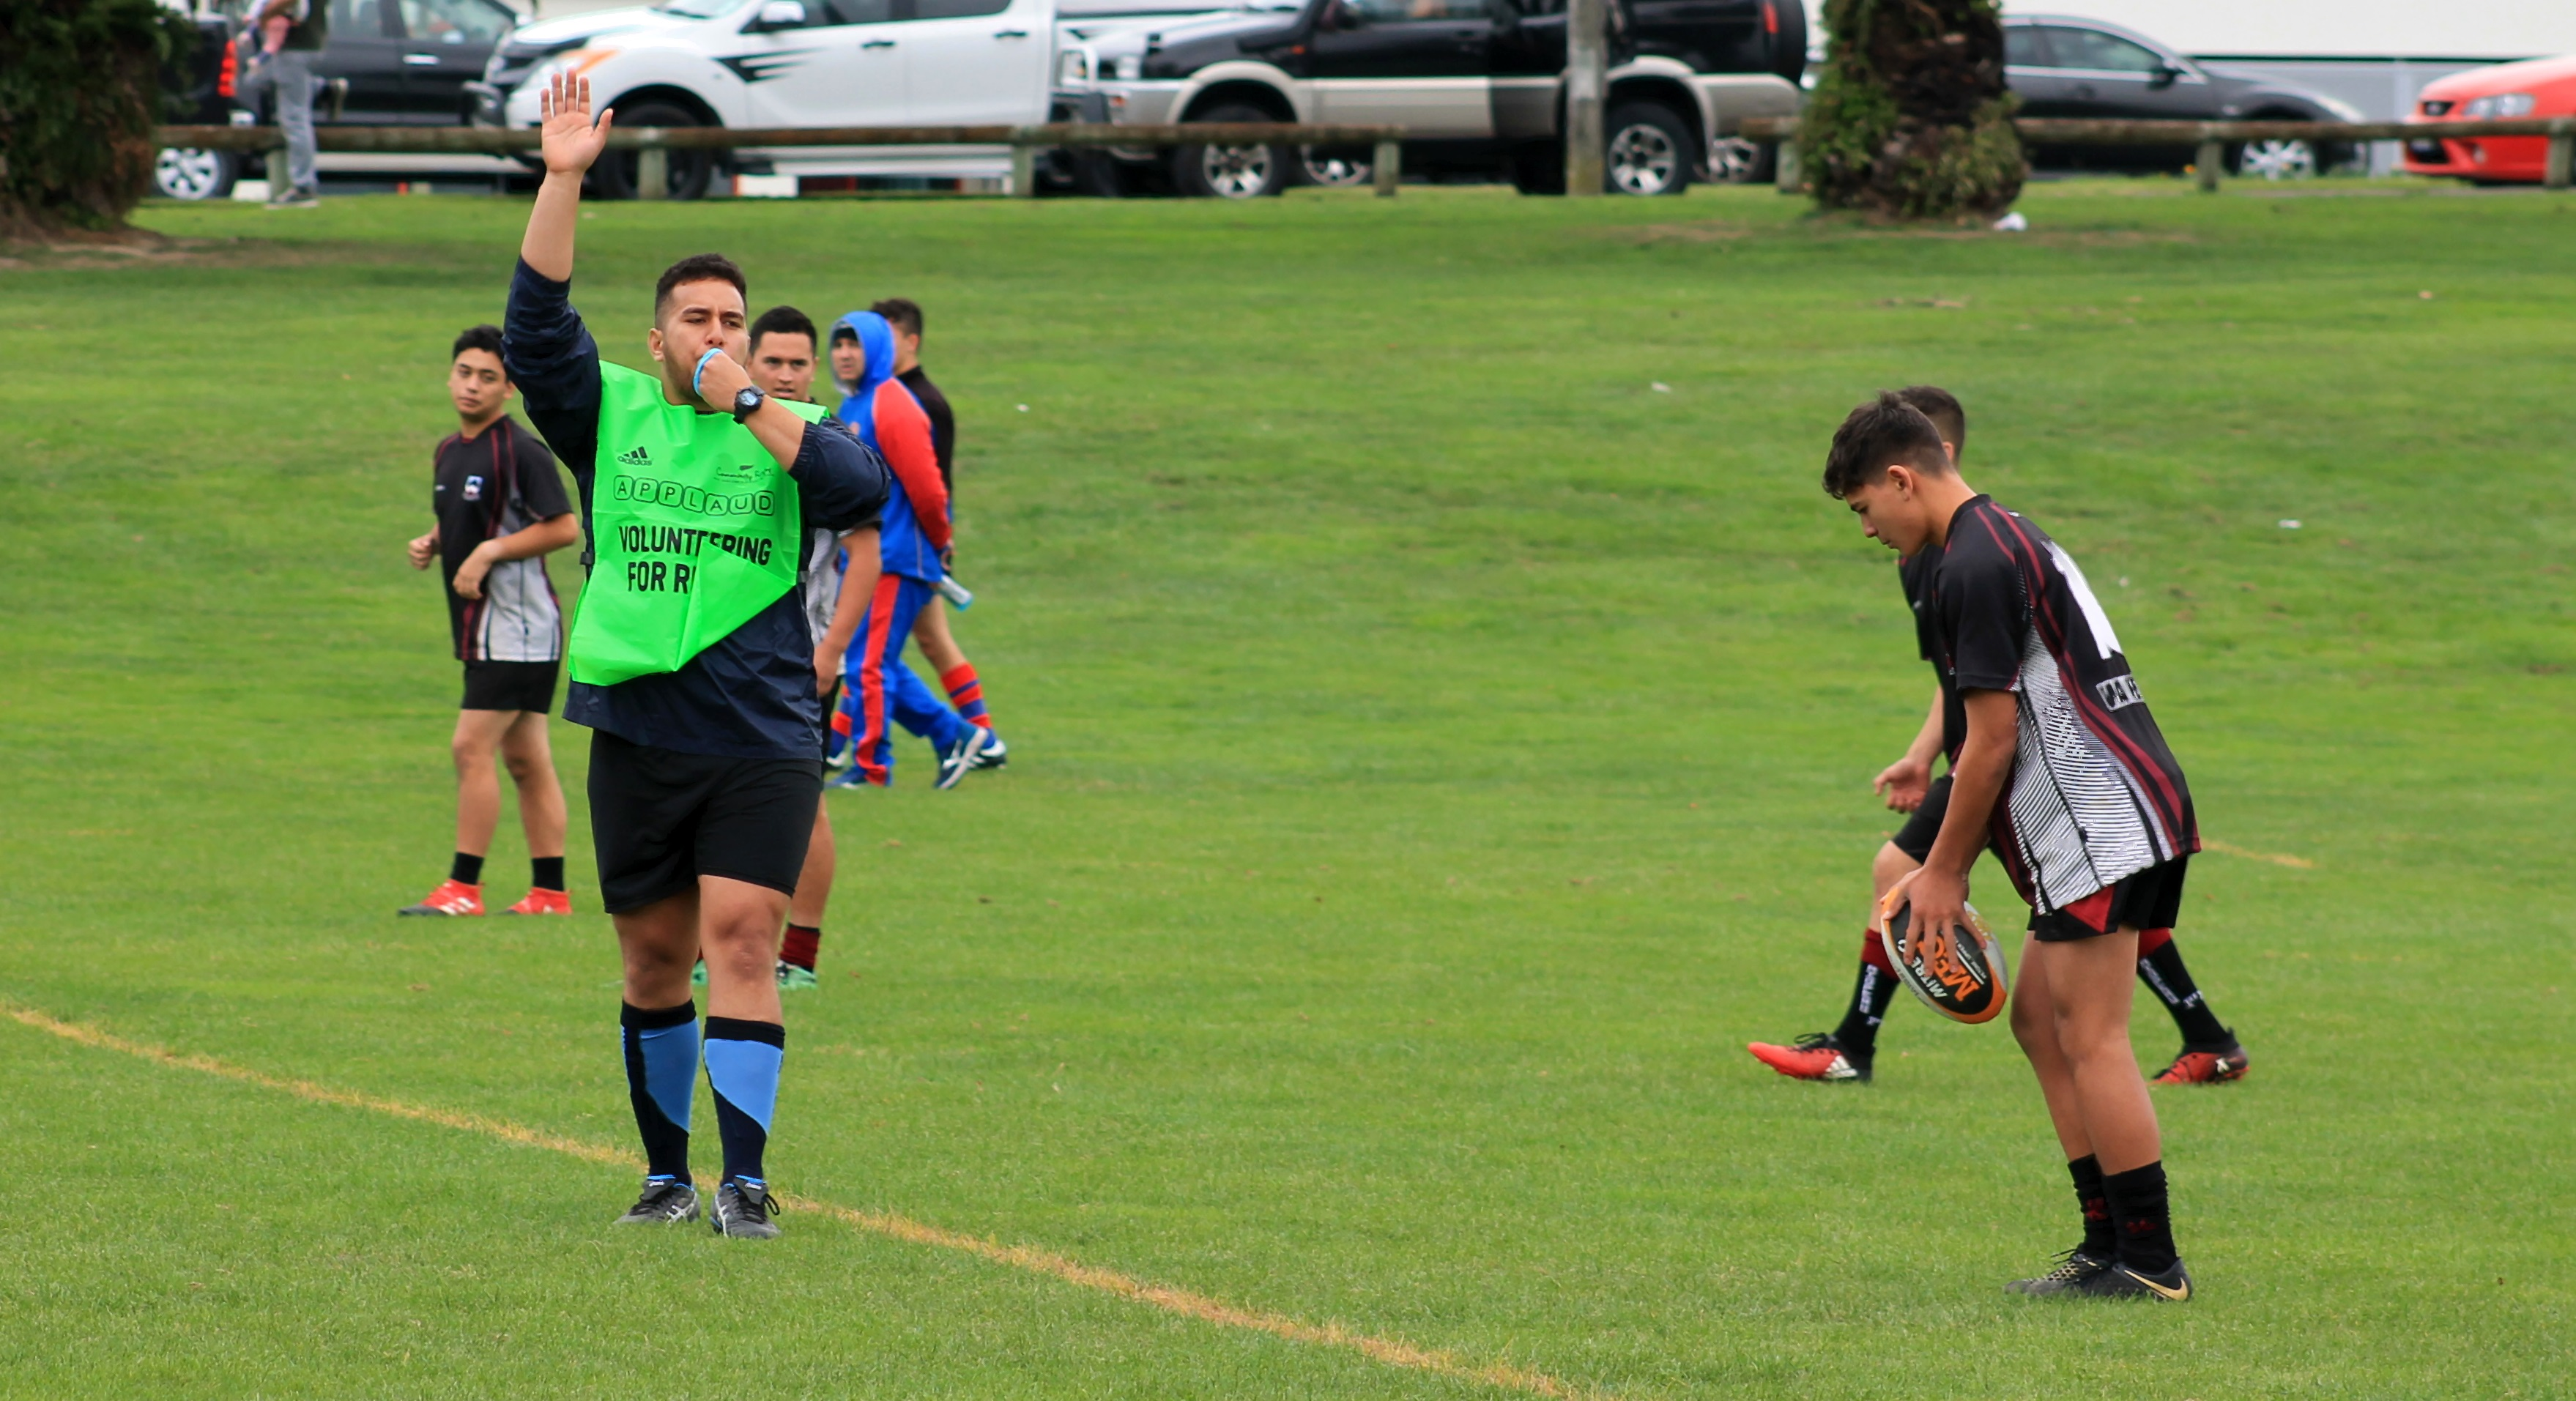 Club referee initiative continues to show positive results